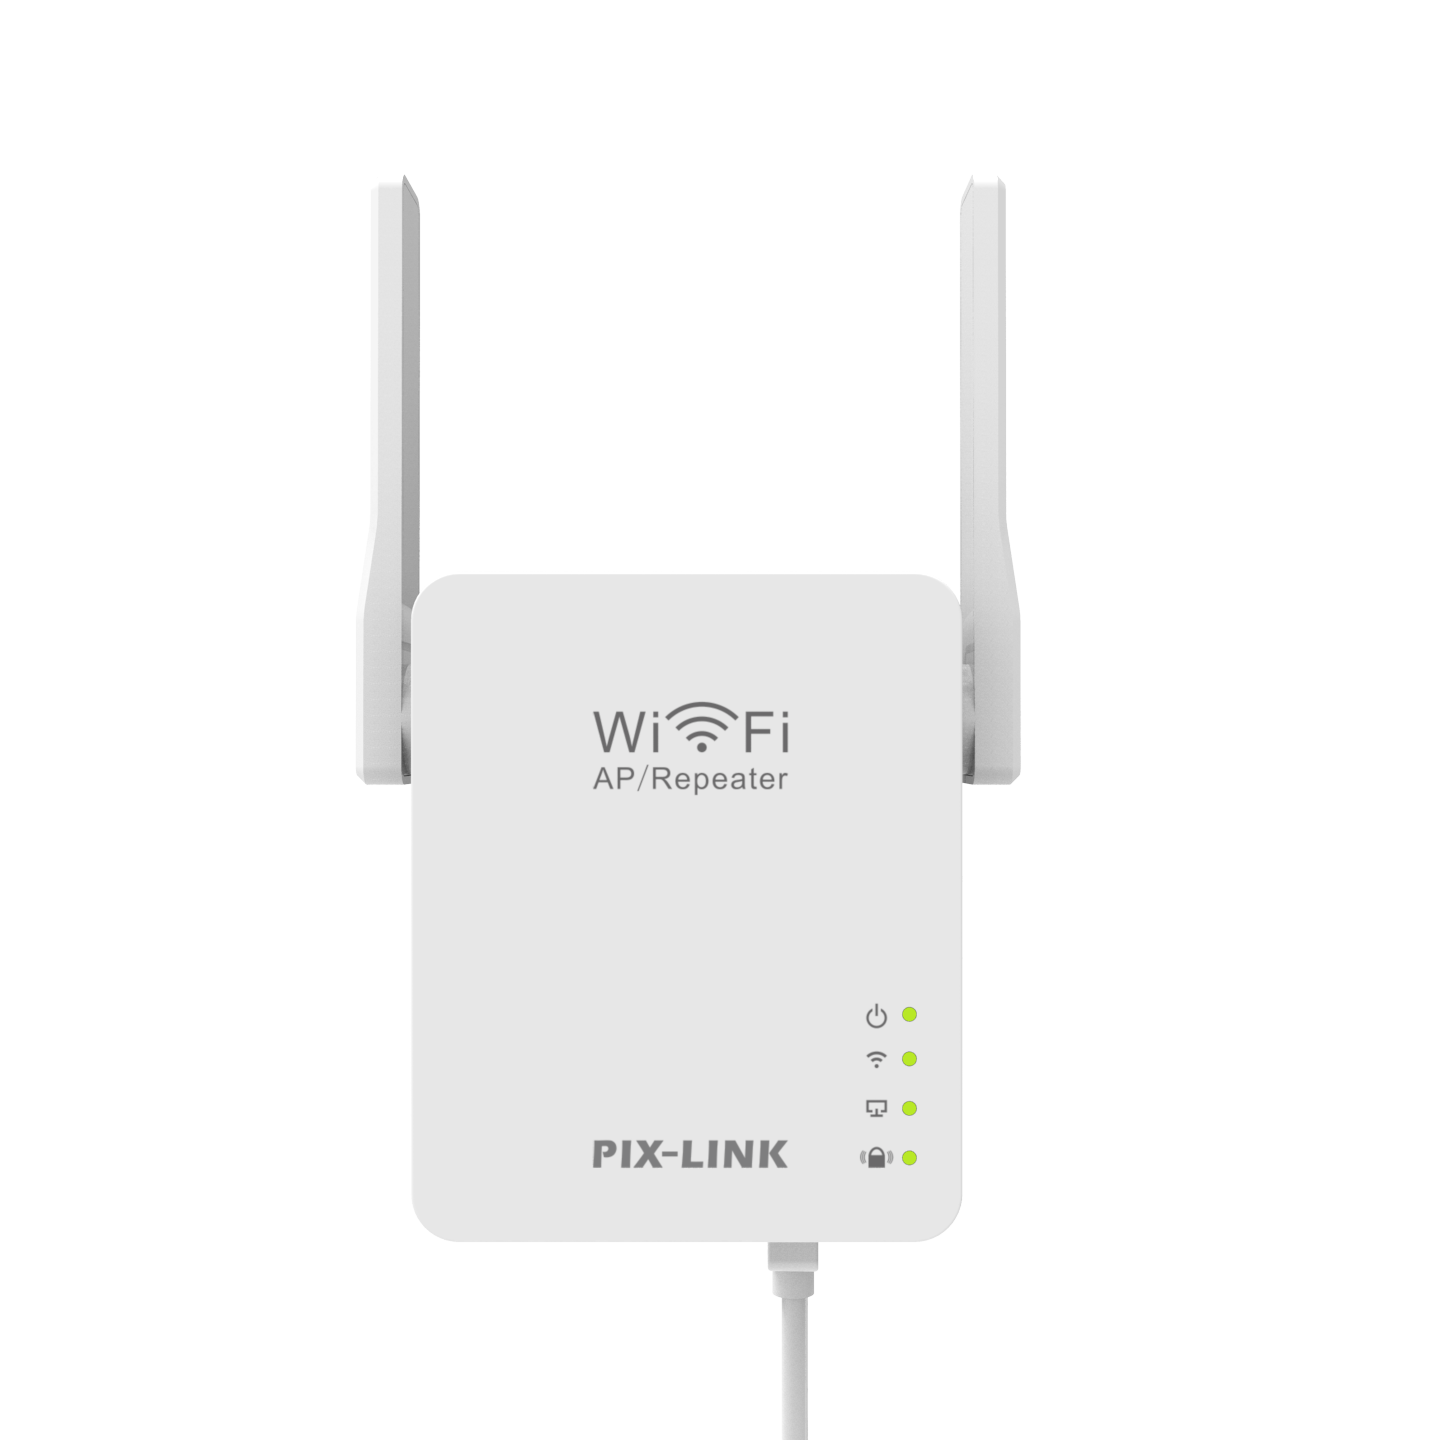 LV-WR05U 300Mbps Wireless-N Repeater/AP